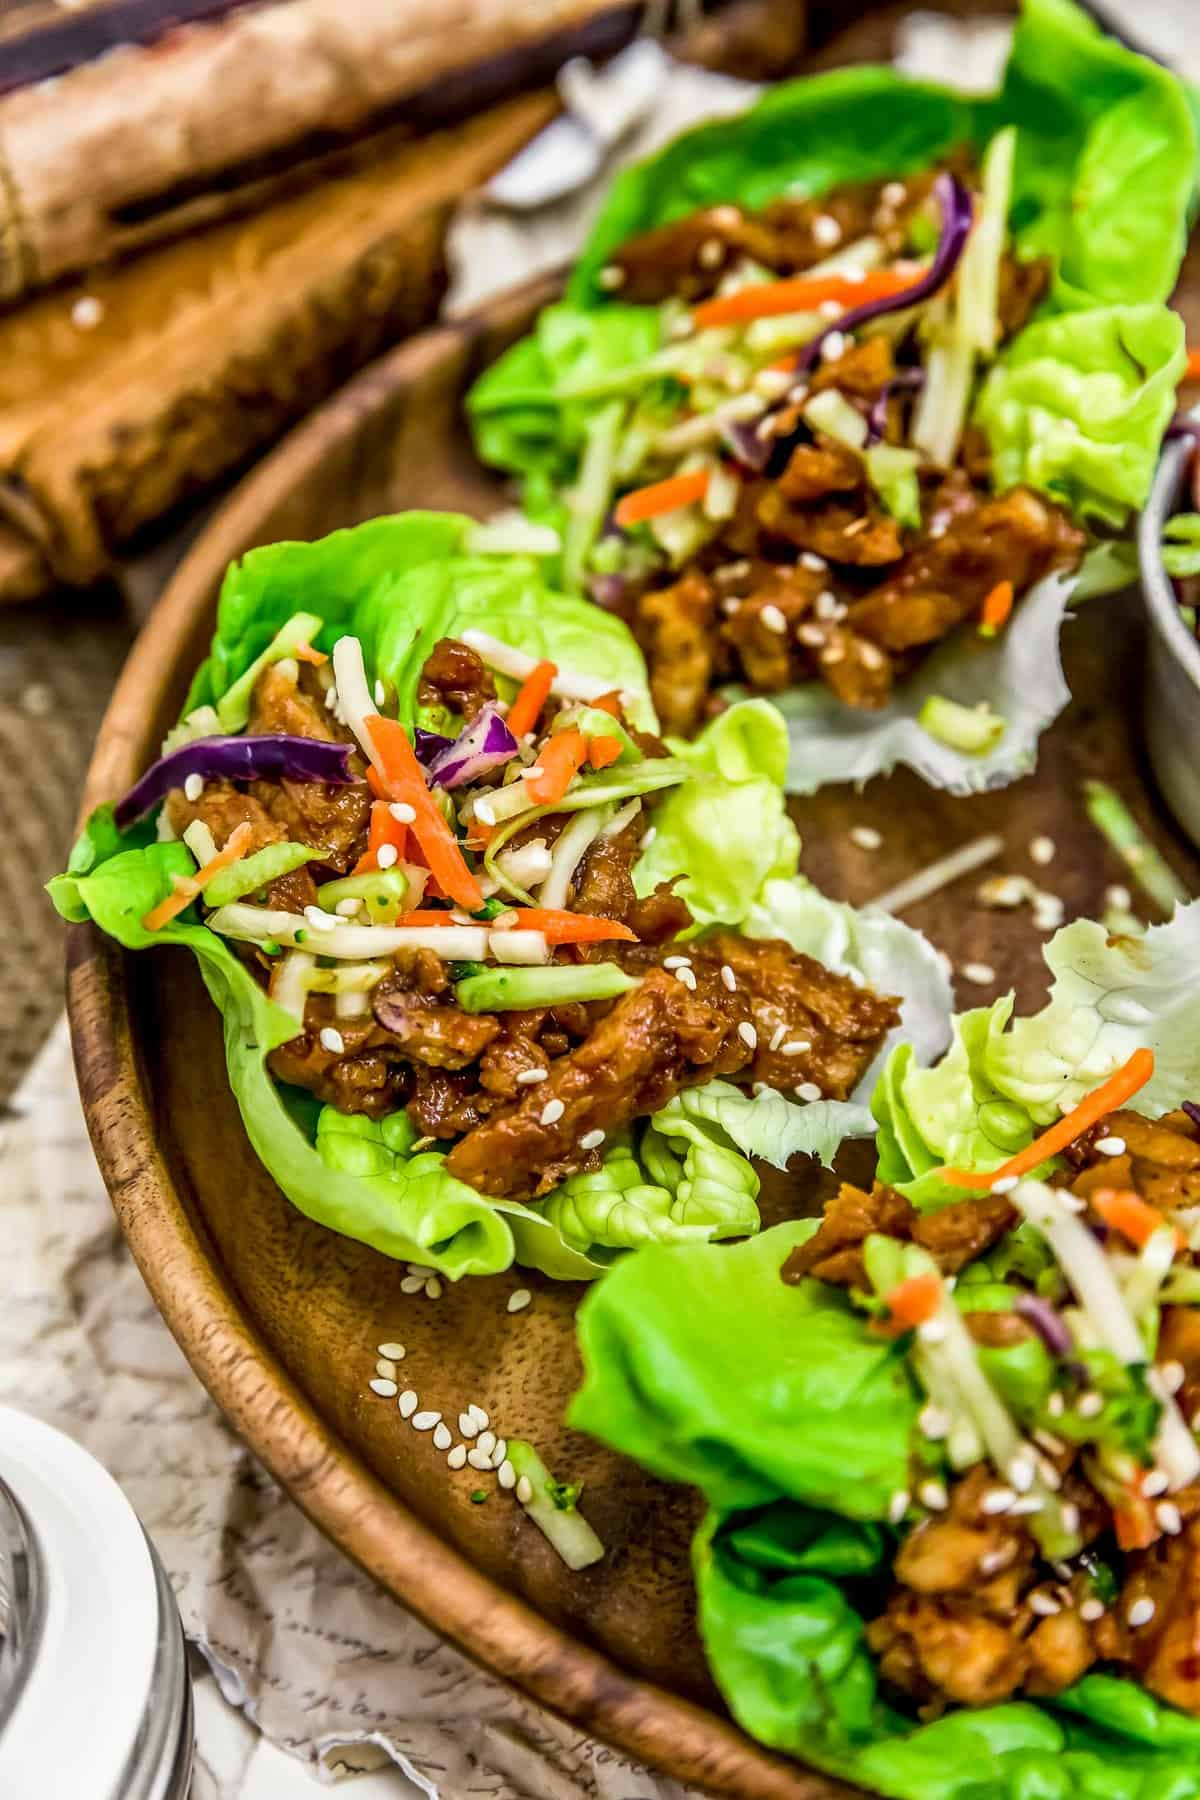 Chinese Five Spice Barbecue Sauce Soy Curl Lettuce Cups